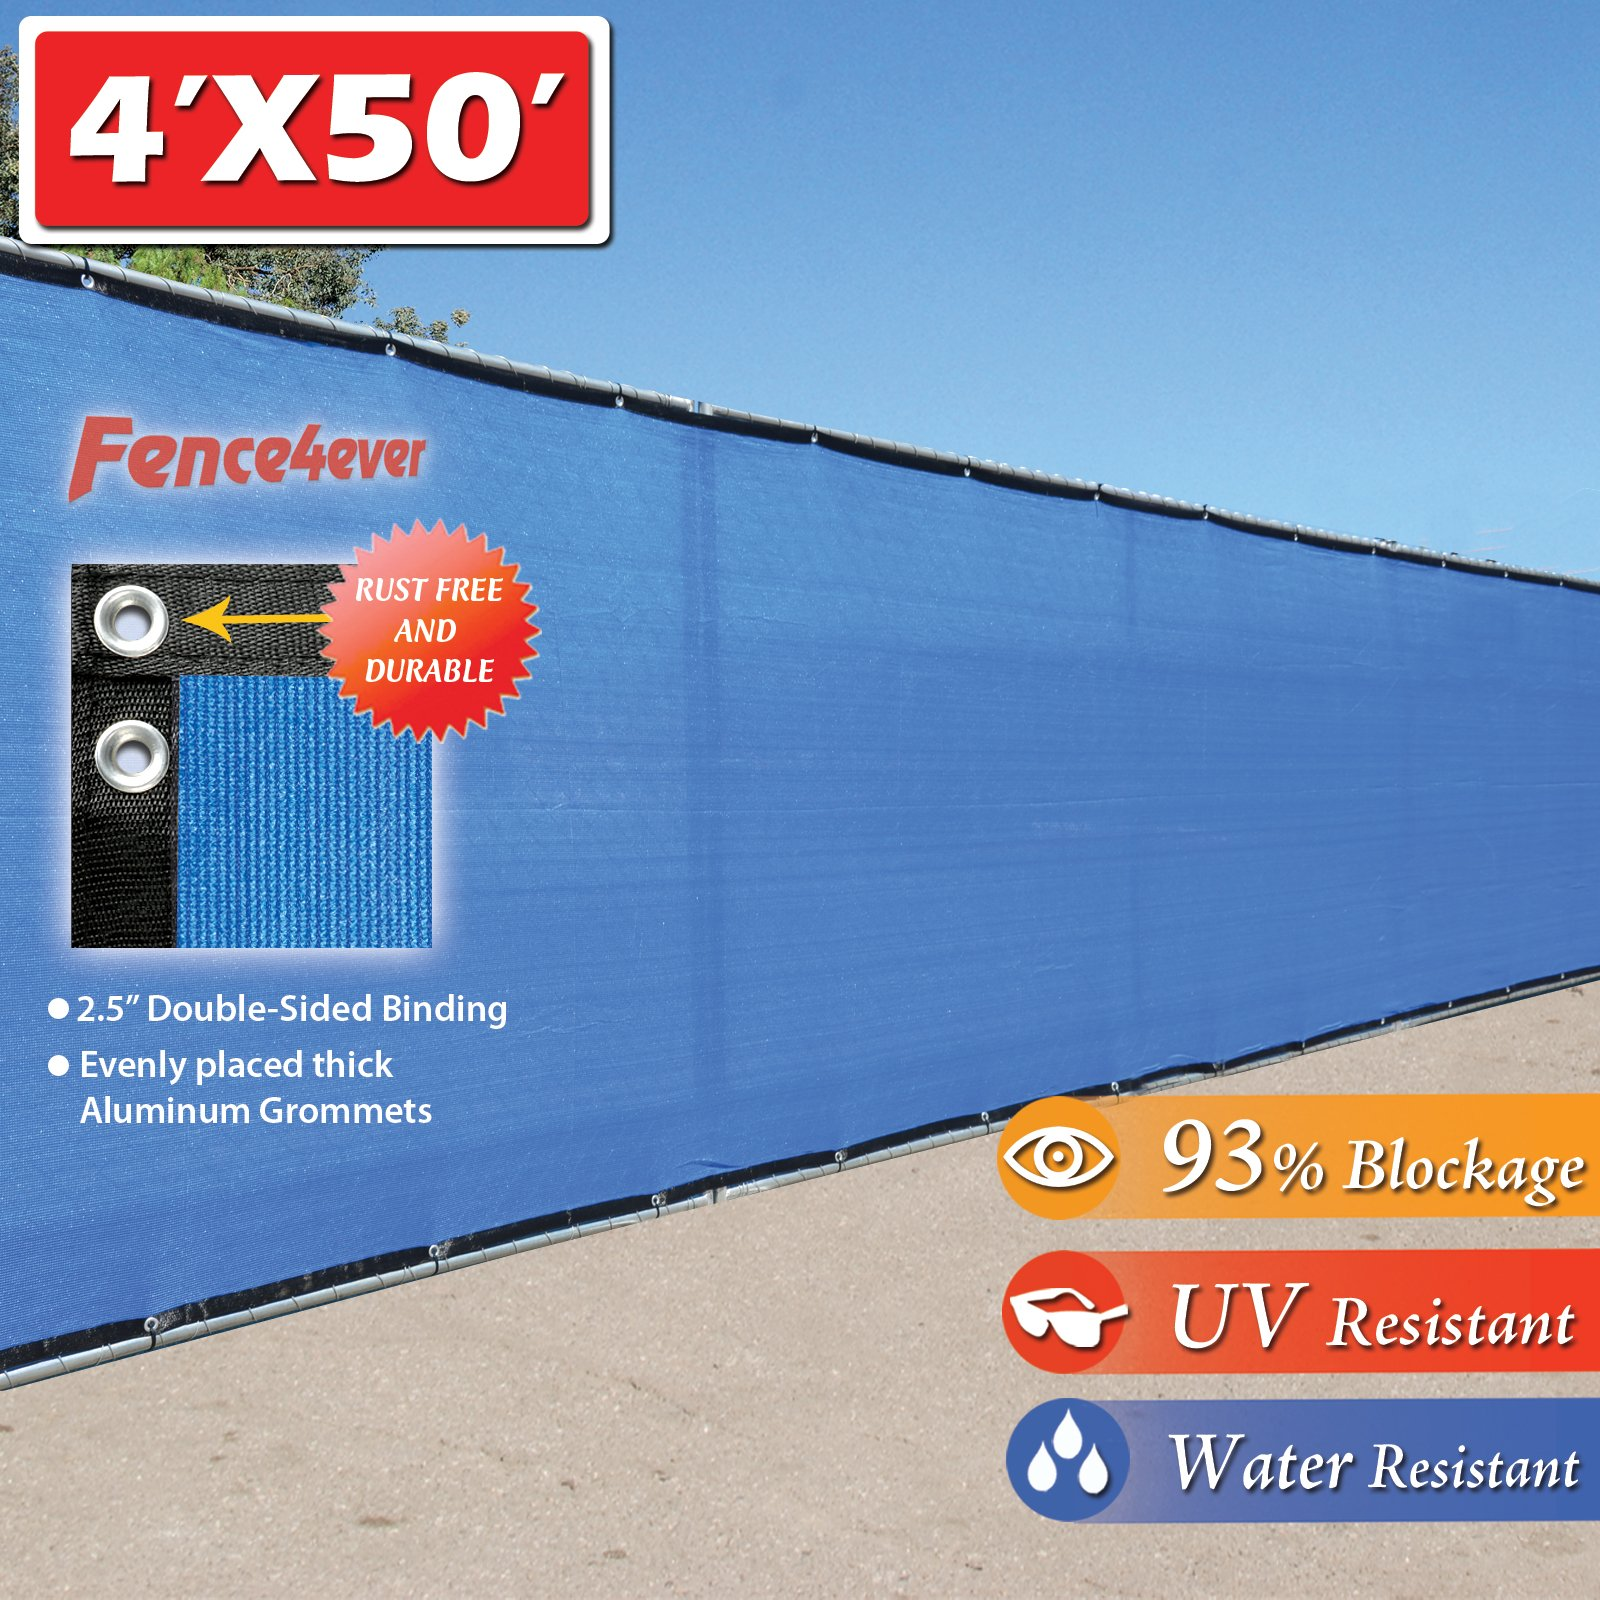 4'x50' 4ft Tall 3rd Gen Royal Blue Fence Screen Privacy Screen Windscreen Shade Cover Mesh Fabric (Aluminum Grommets) Home, Court, or Pool